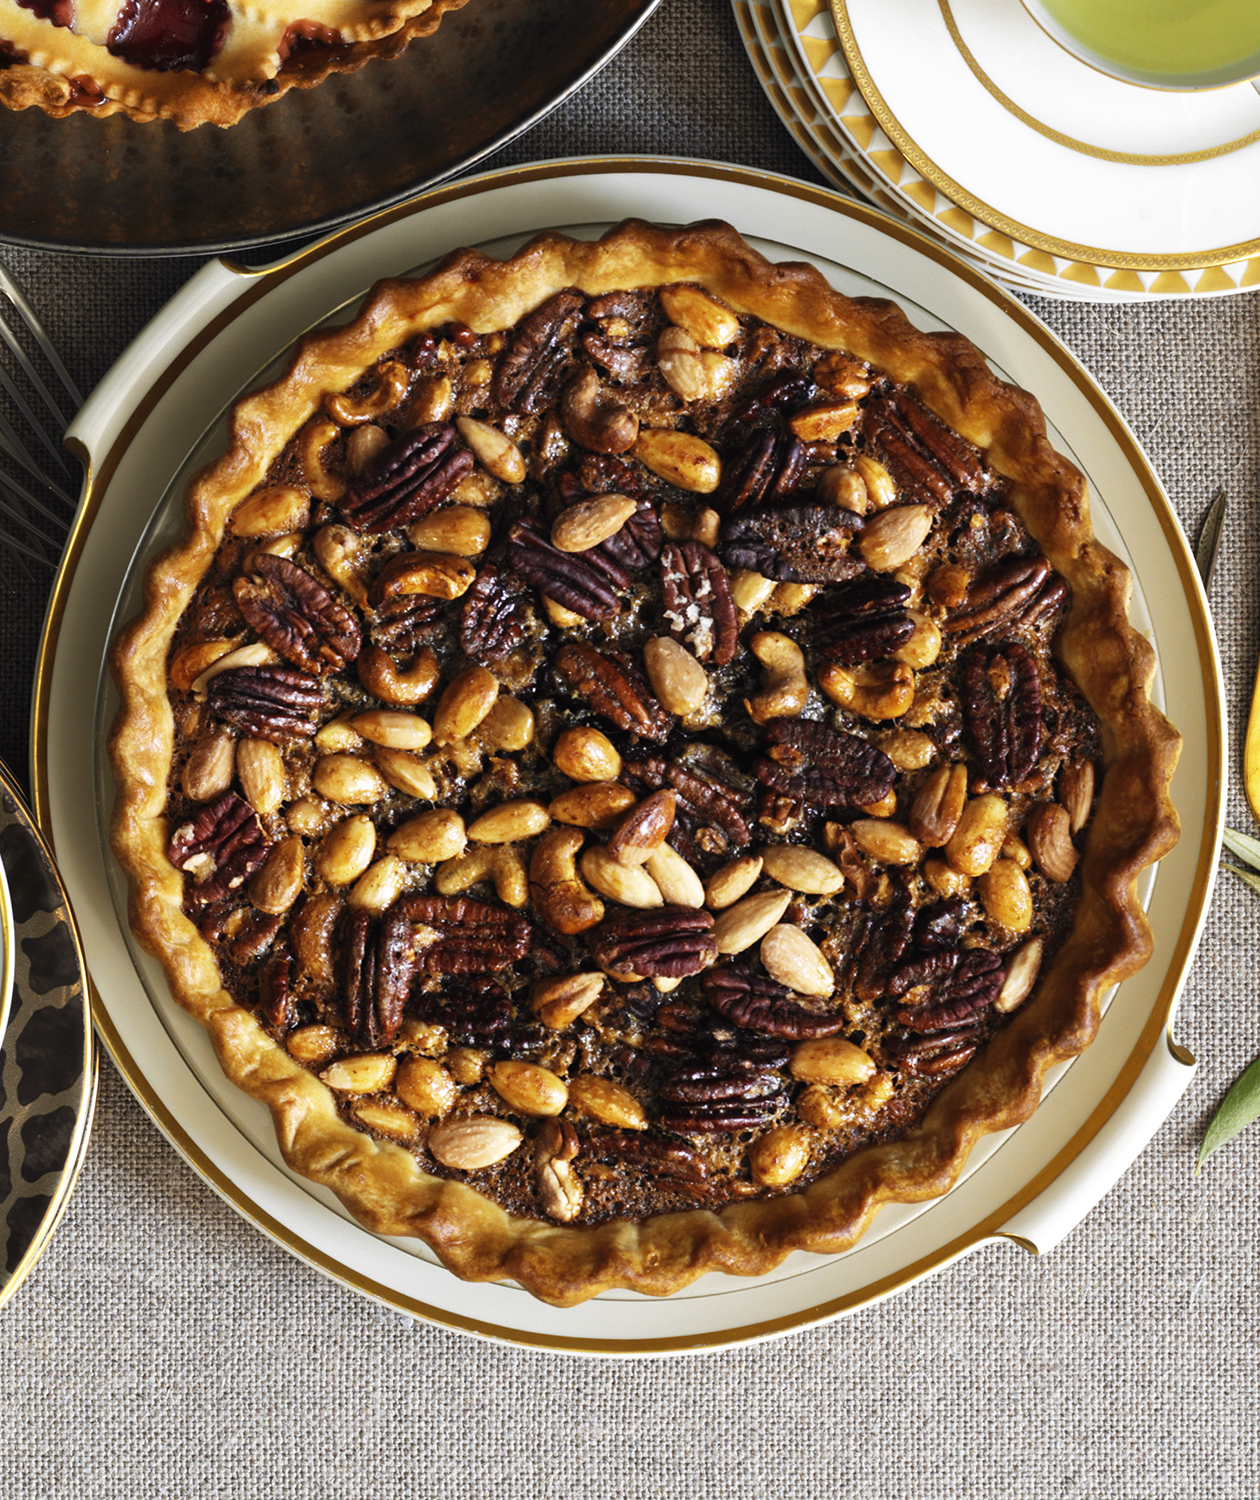 Spiced Mixed-Nut Pie